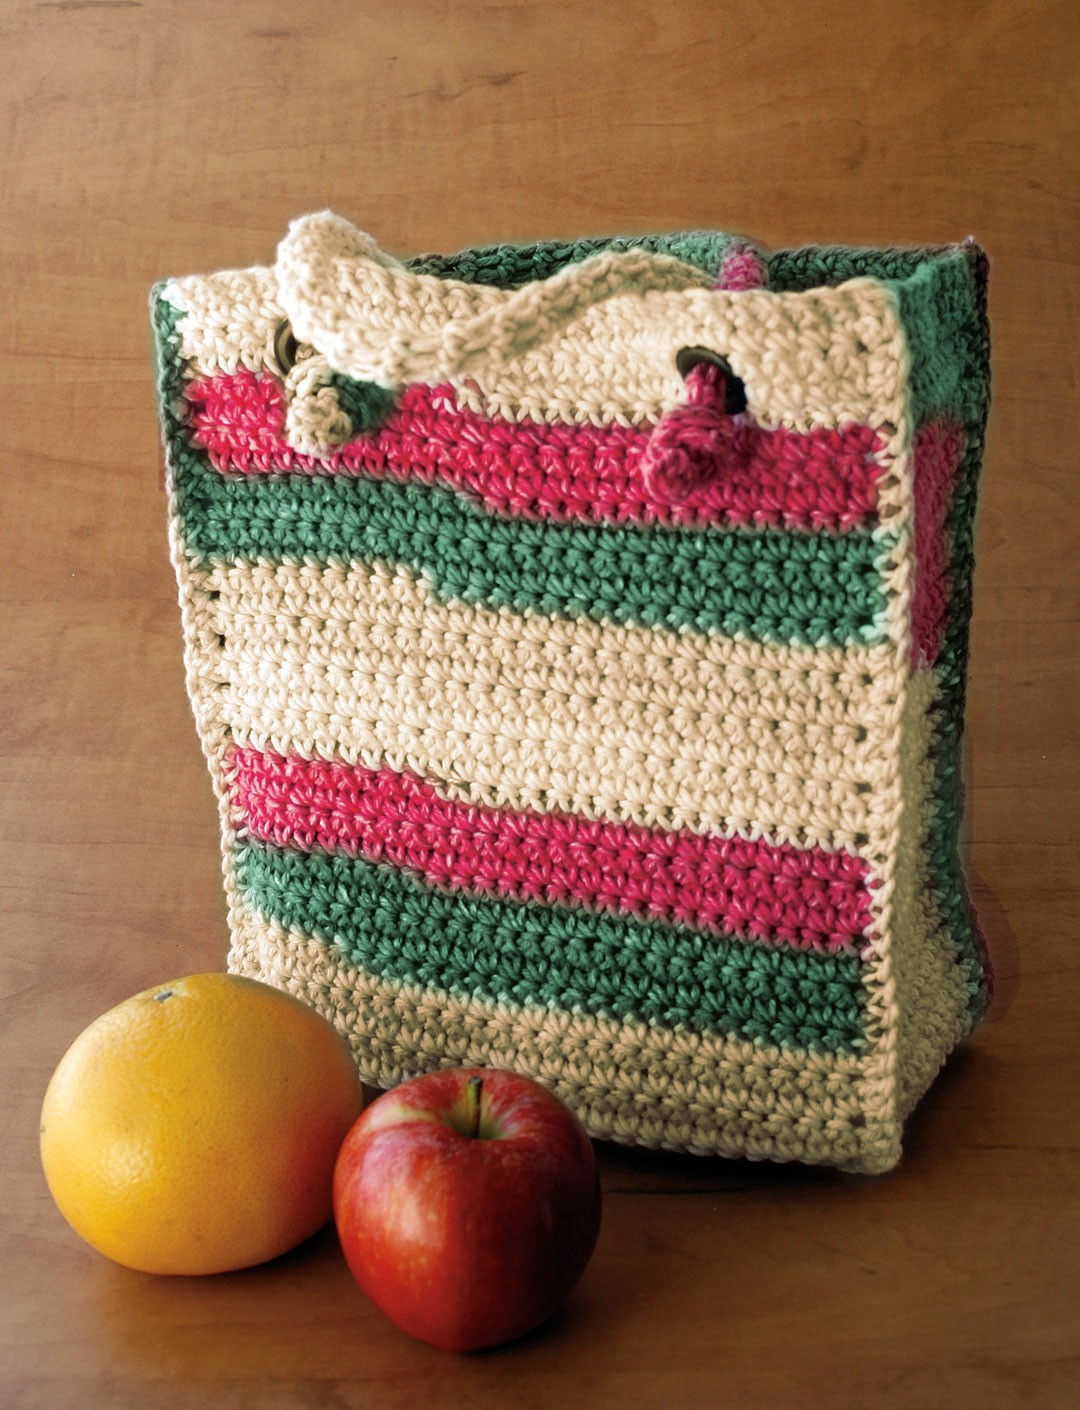 Lily Sugar And Cream Free Crochet Patterns : Bag to Crochet - Patterns Yarnspirations